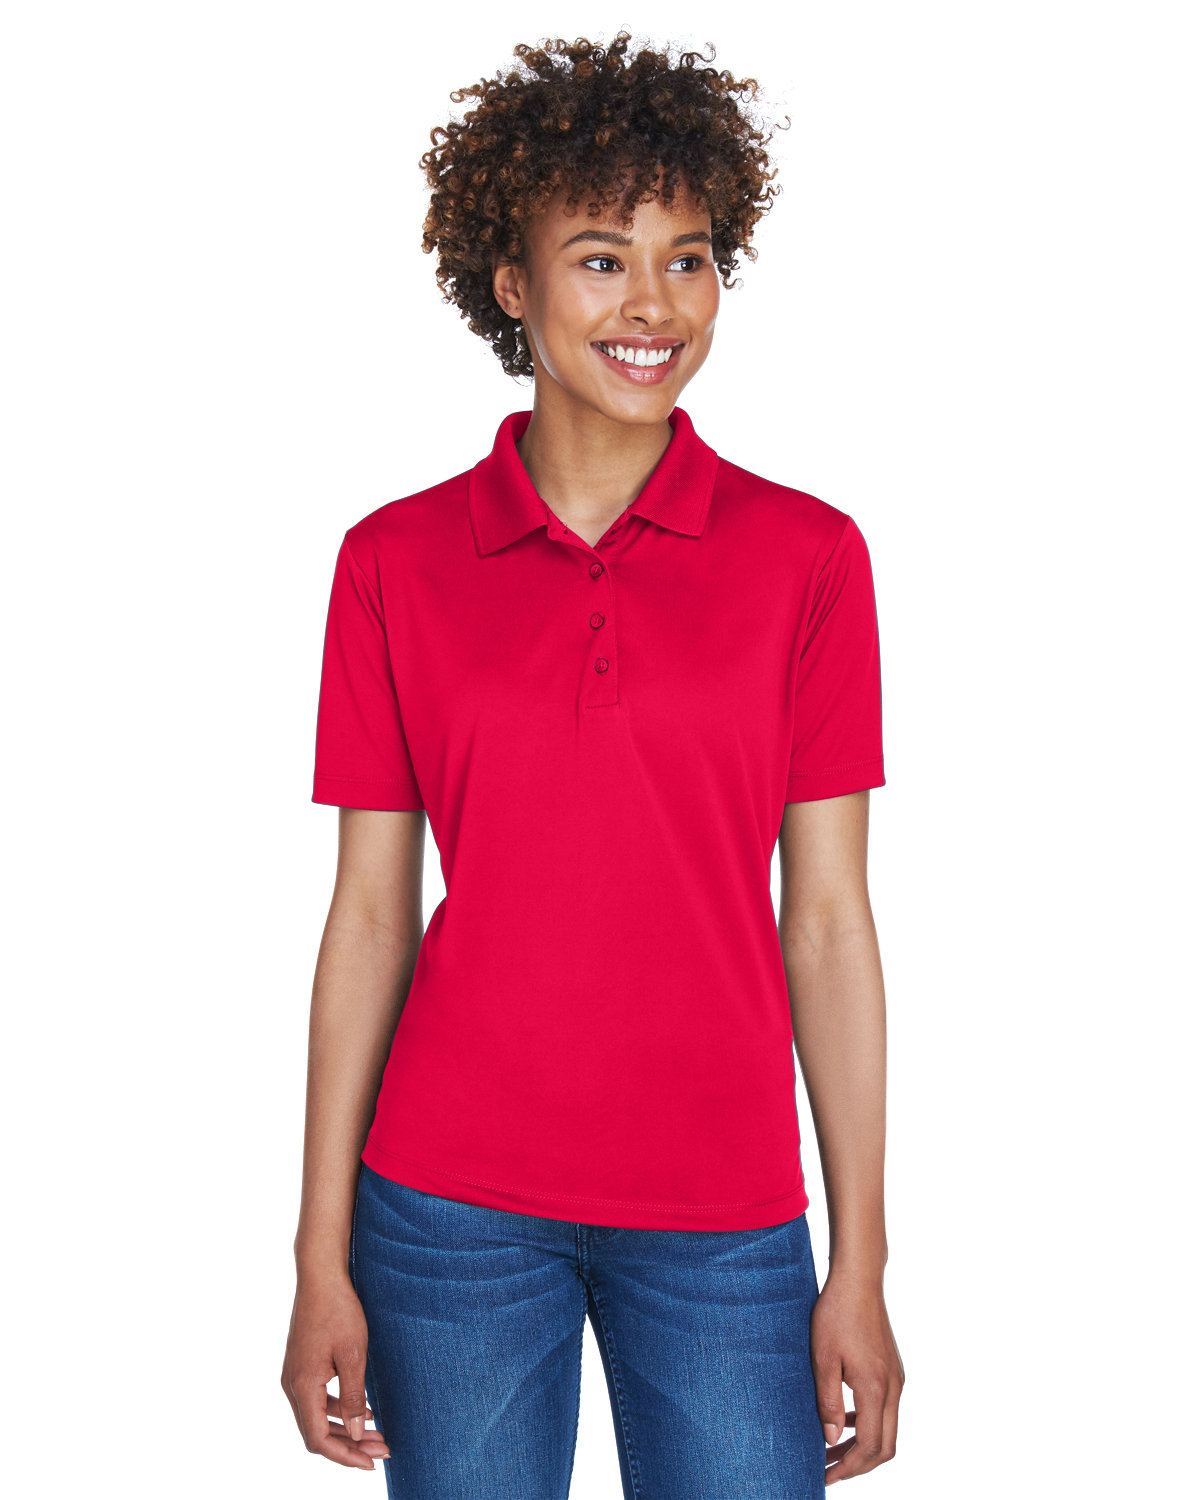 UltraClub Ladies' Cool & Dry 8-Star Elite Performance Interlock Polo RED